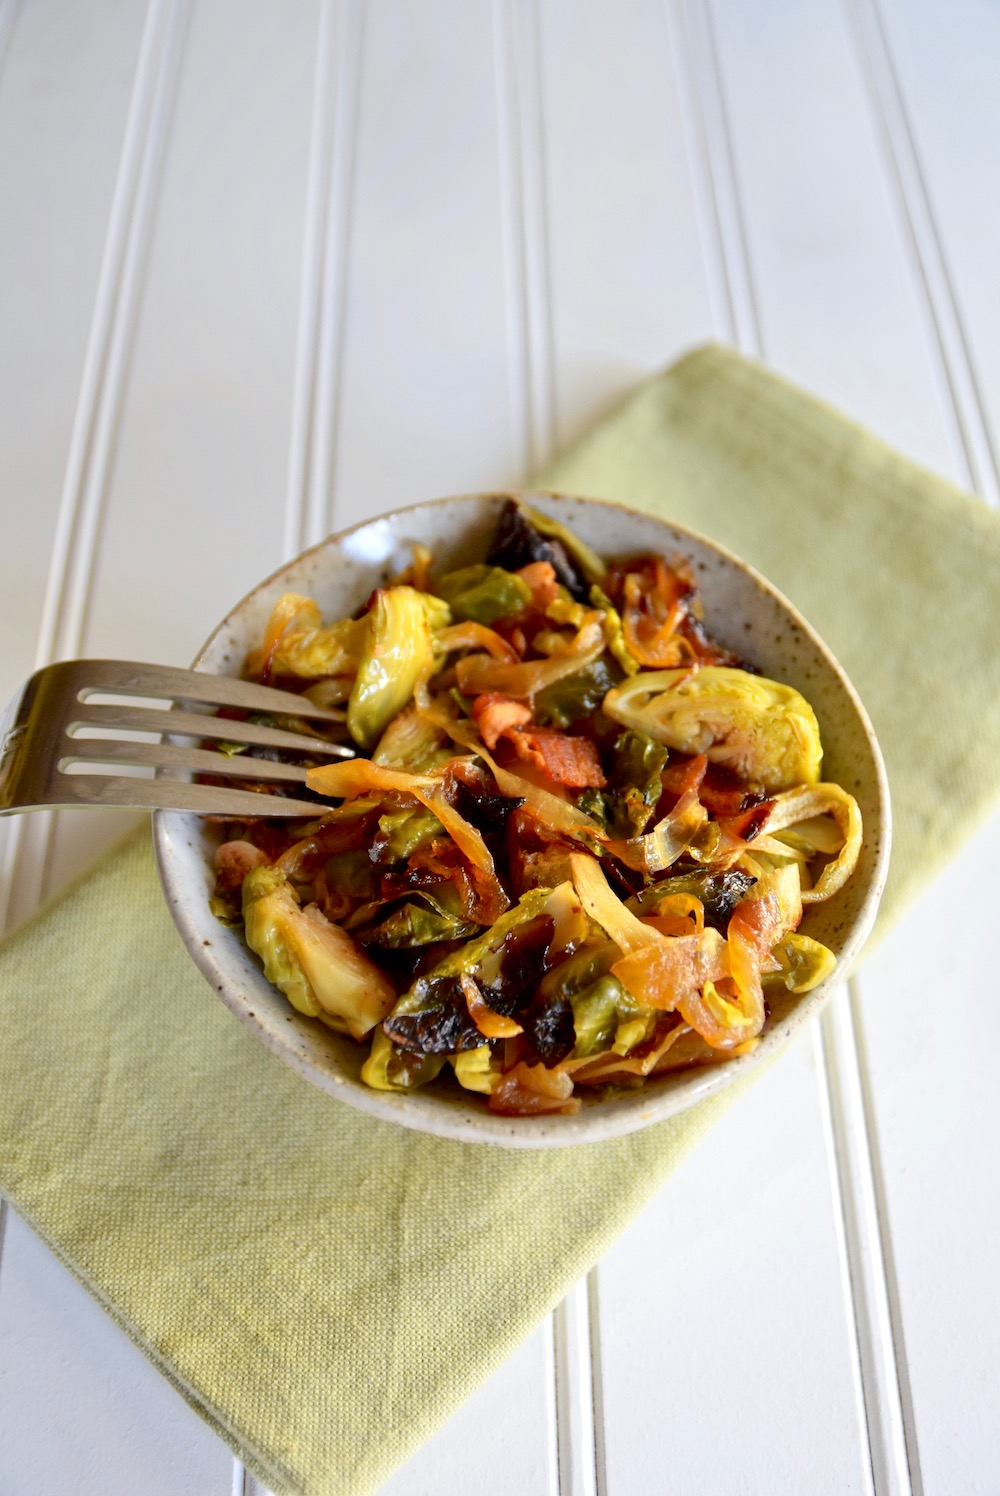 Brussels sprouts with bacon and caramelized onions